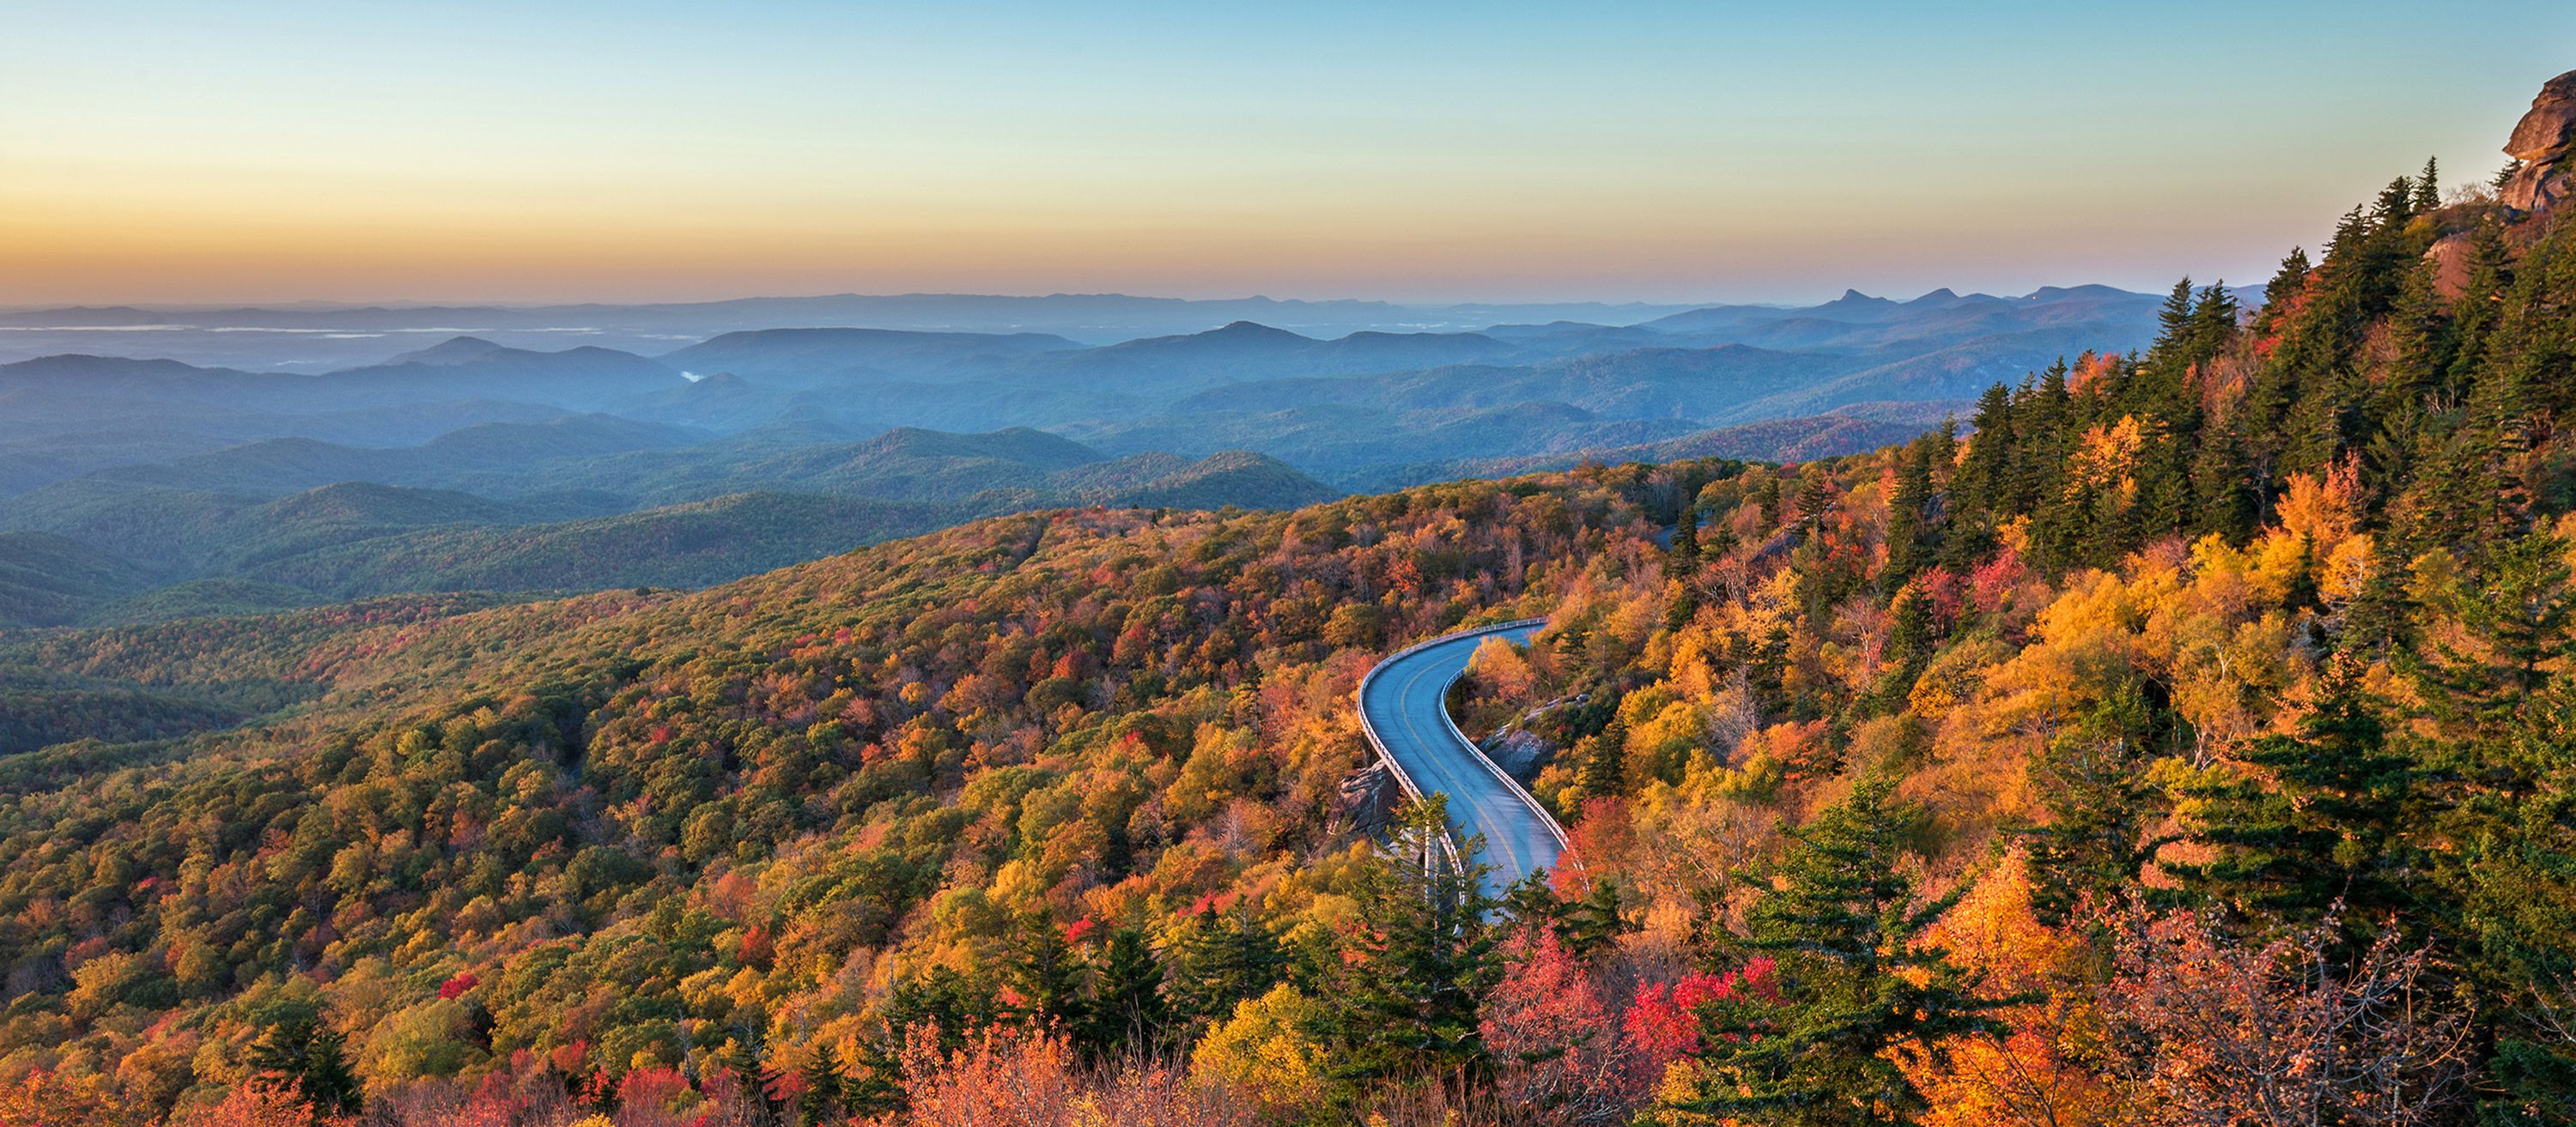 Linn Cove Viaduct, North Carolina